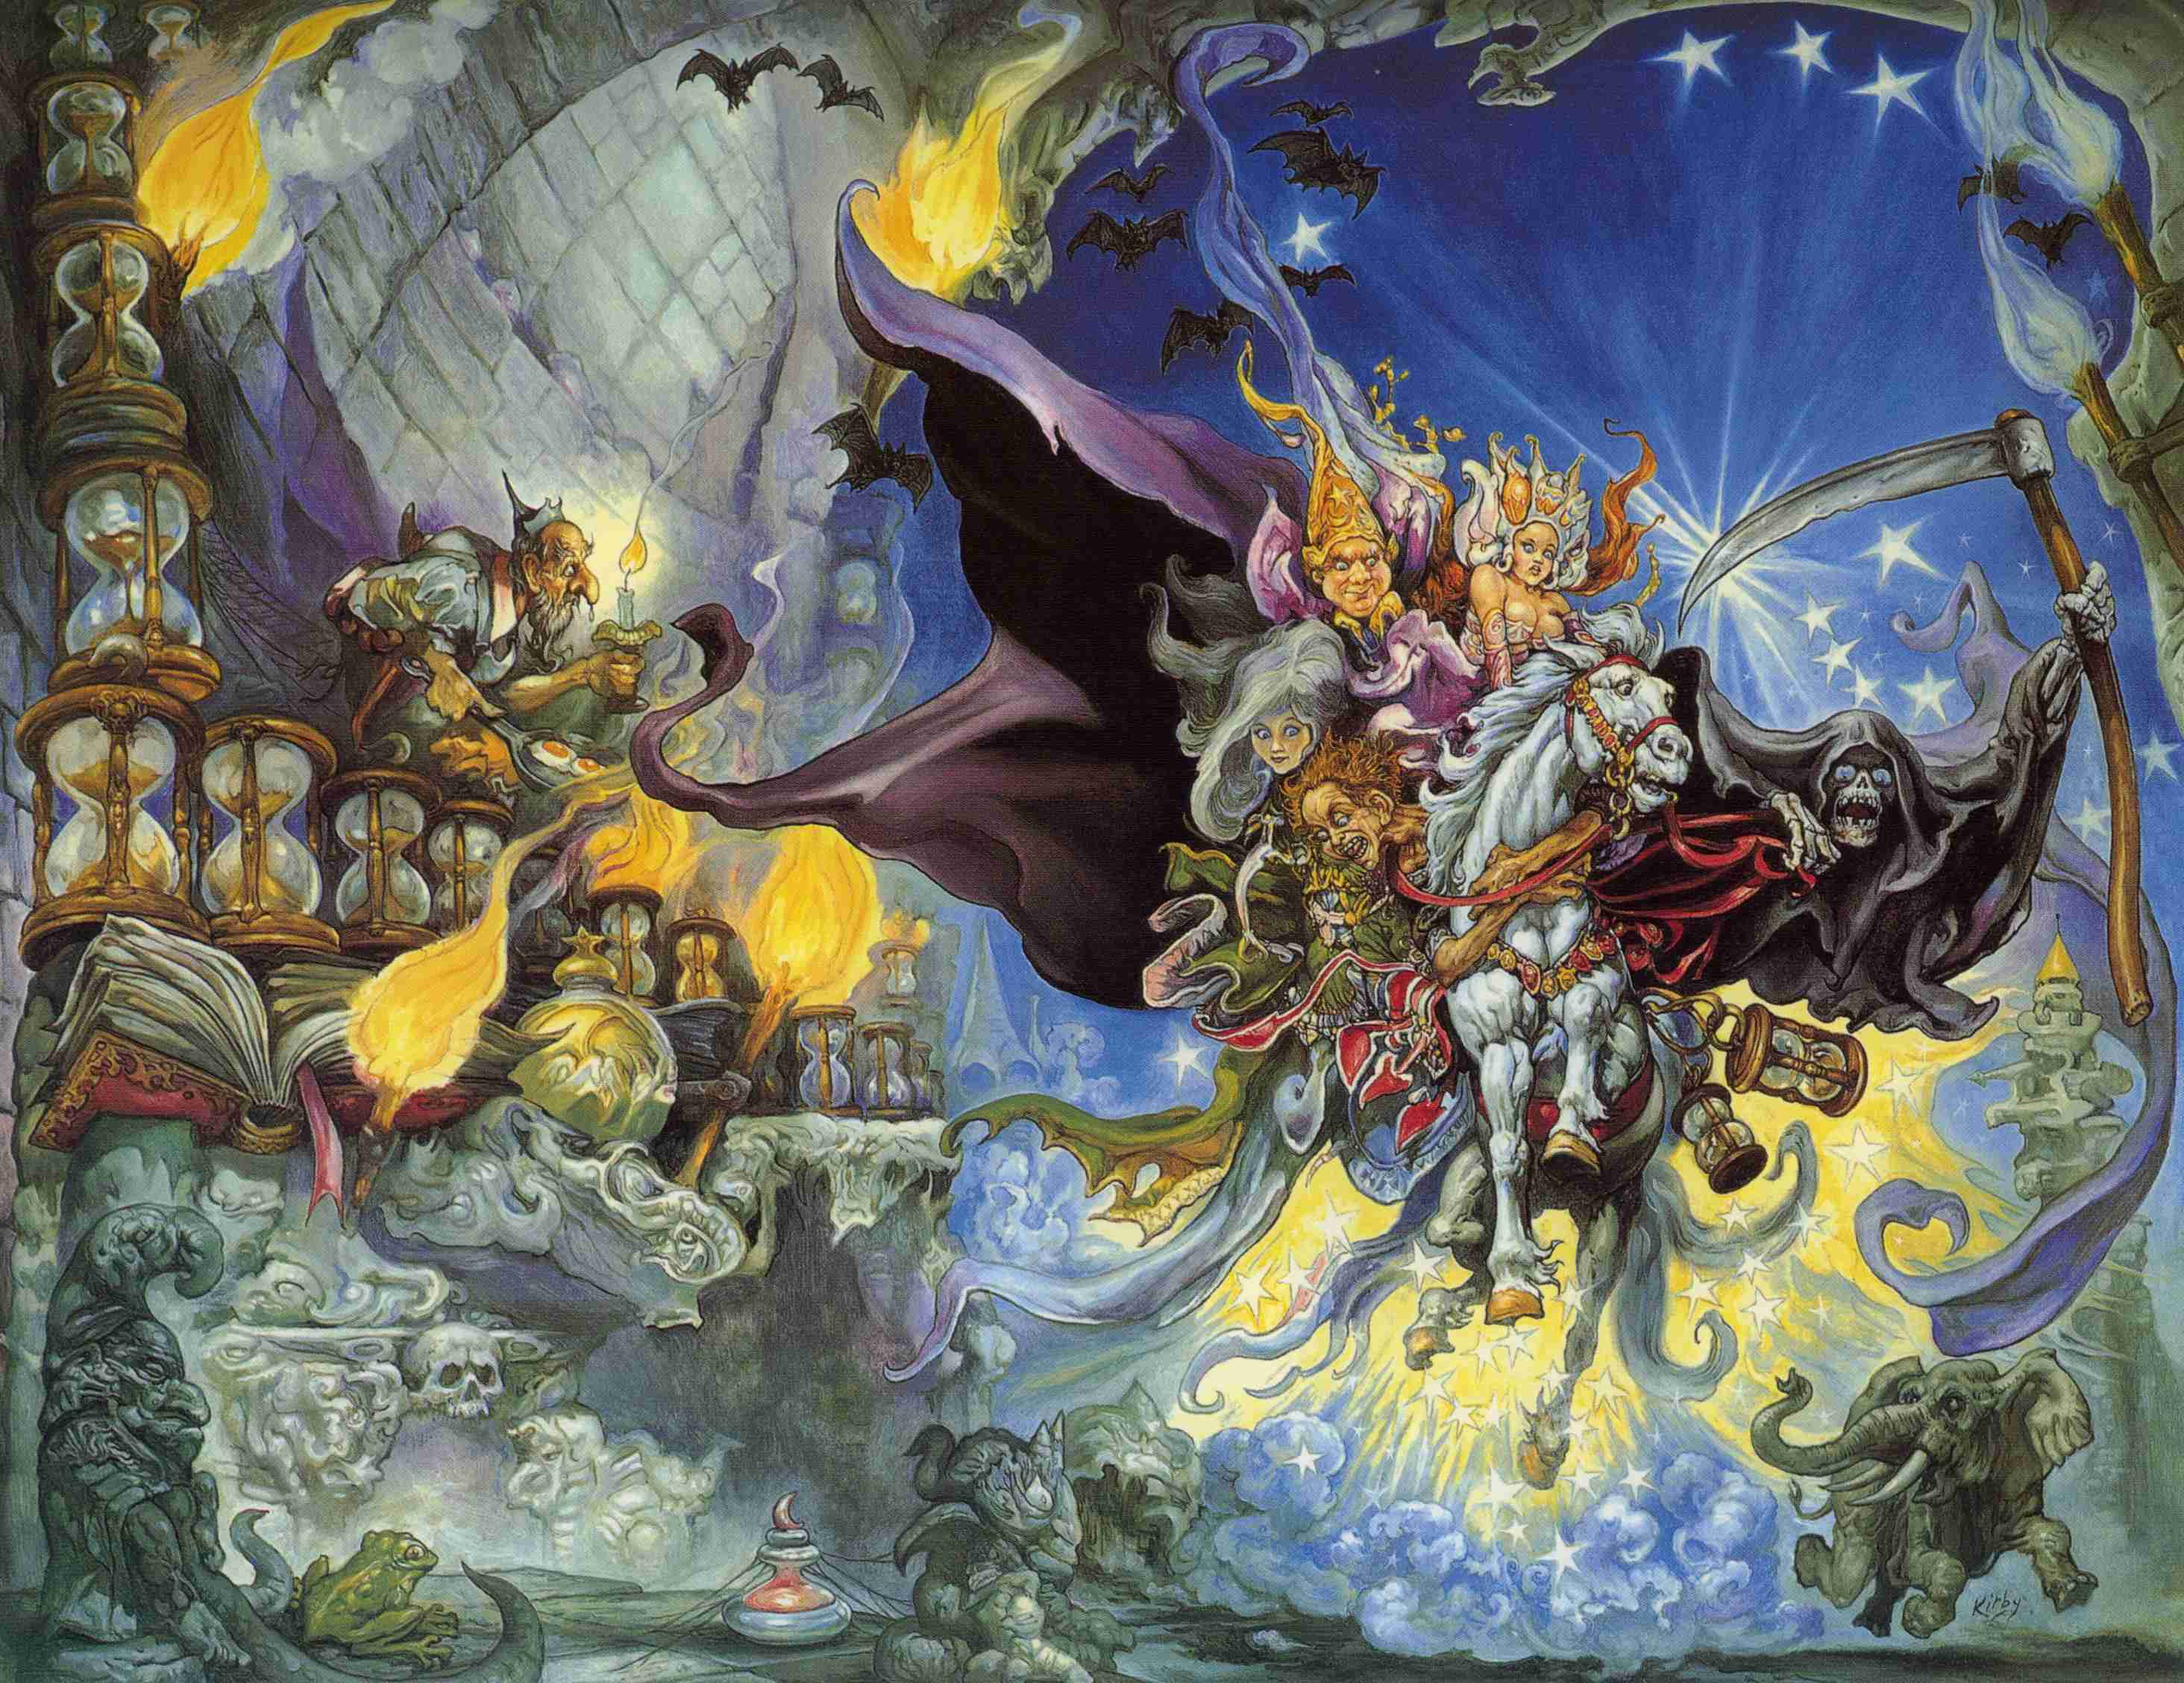 The Shepherd's Crown: A quiet end to the Discworld series